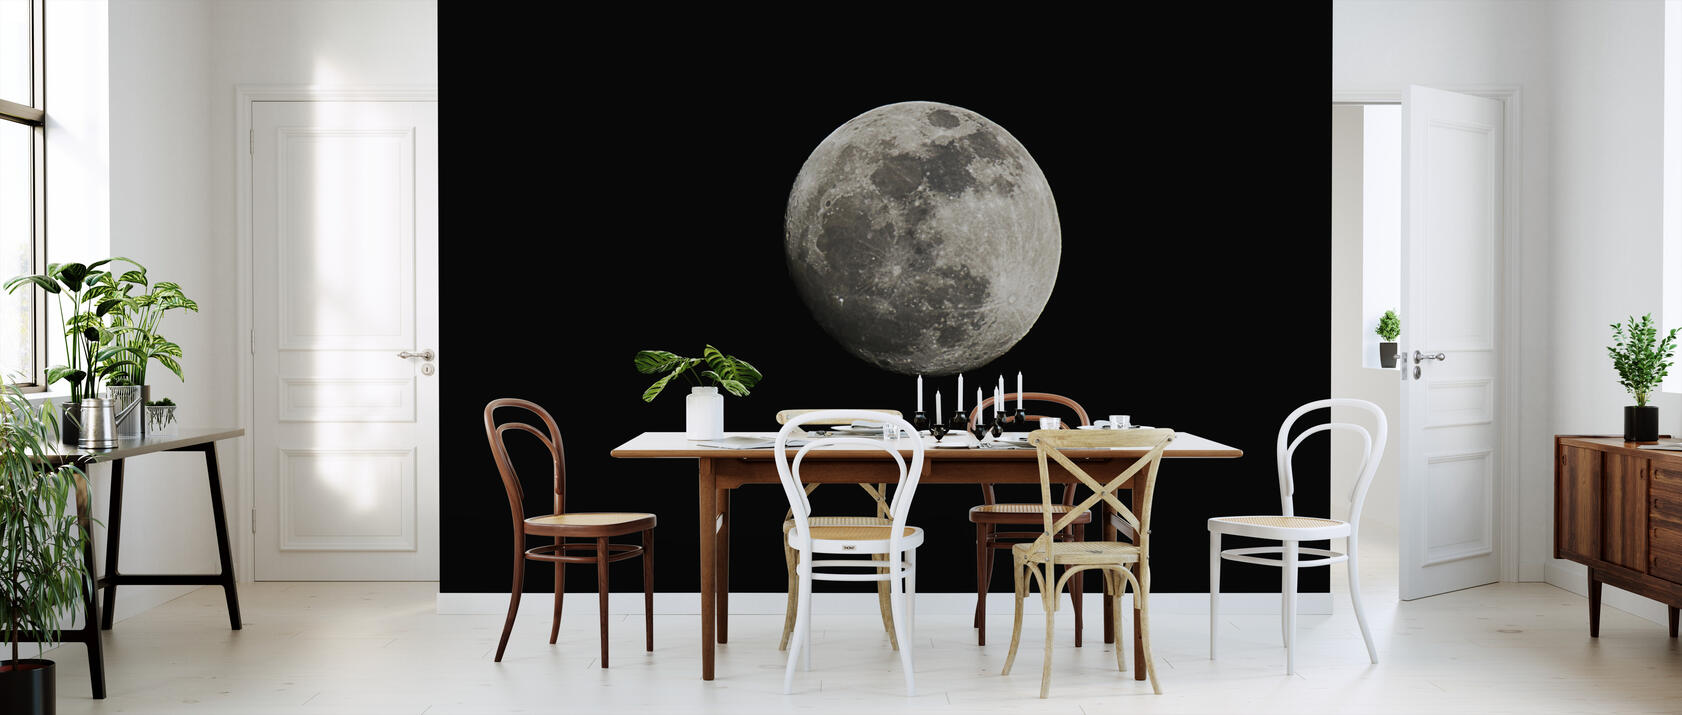 moon einzigartige tapete h chster qualit t photowall. Black Bedroom Furniture Sets. Home Design Ideas